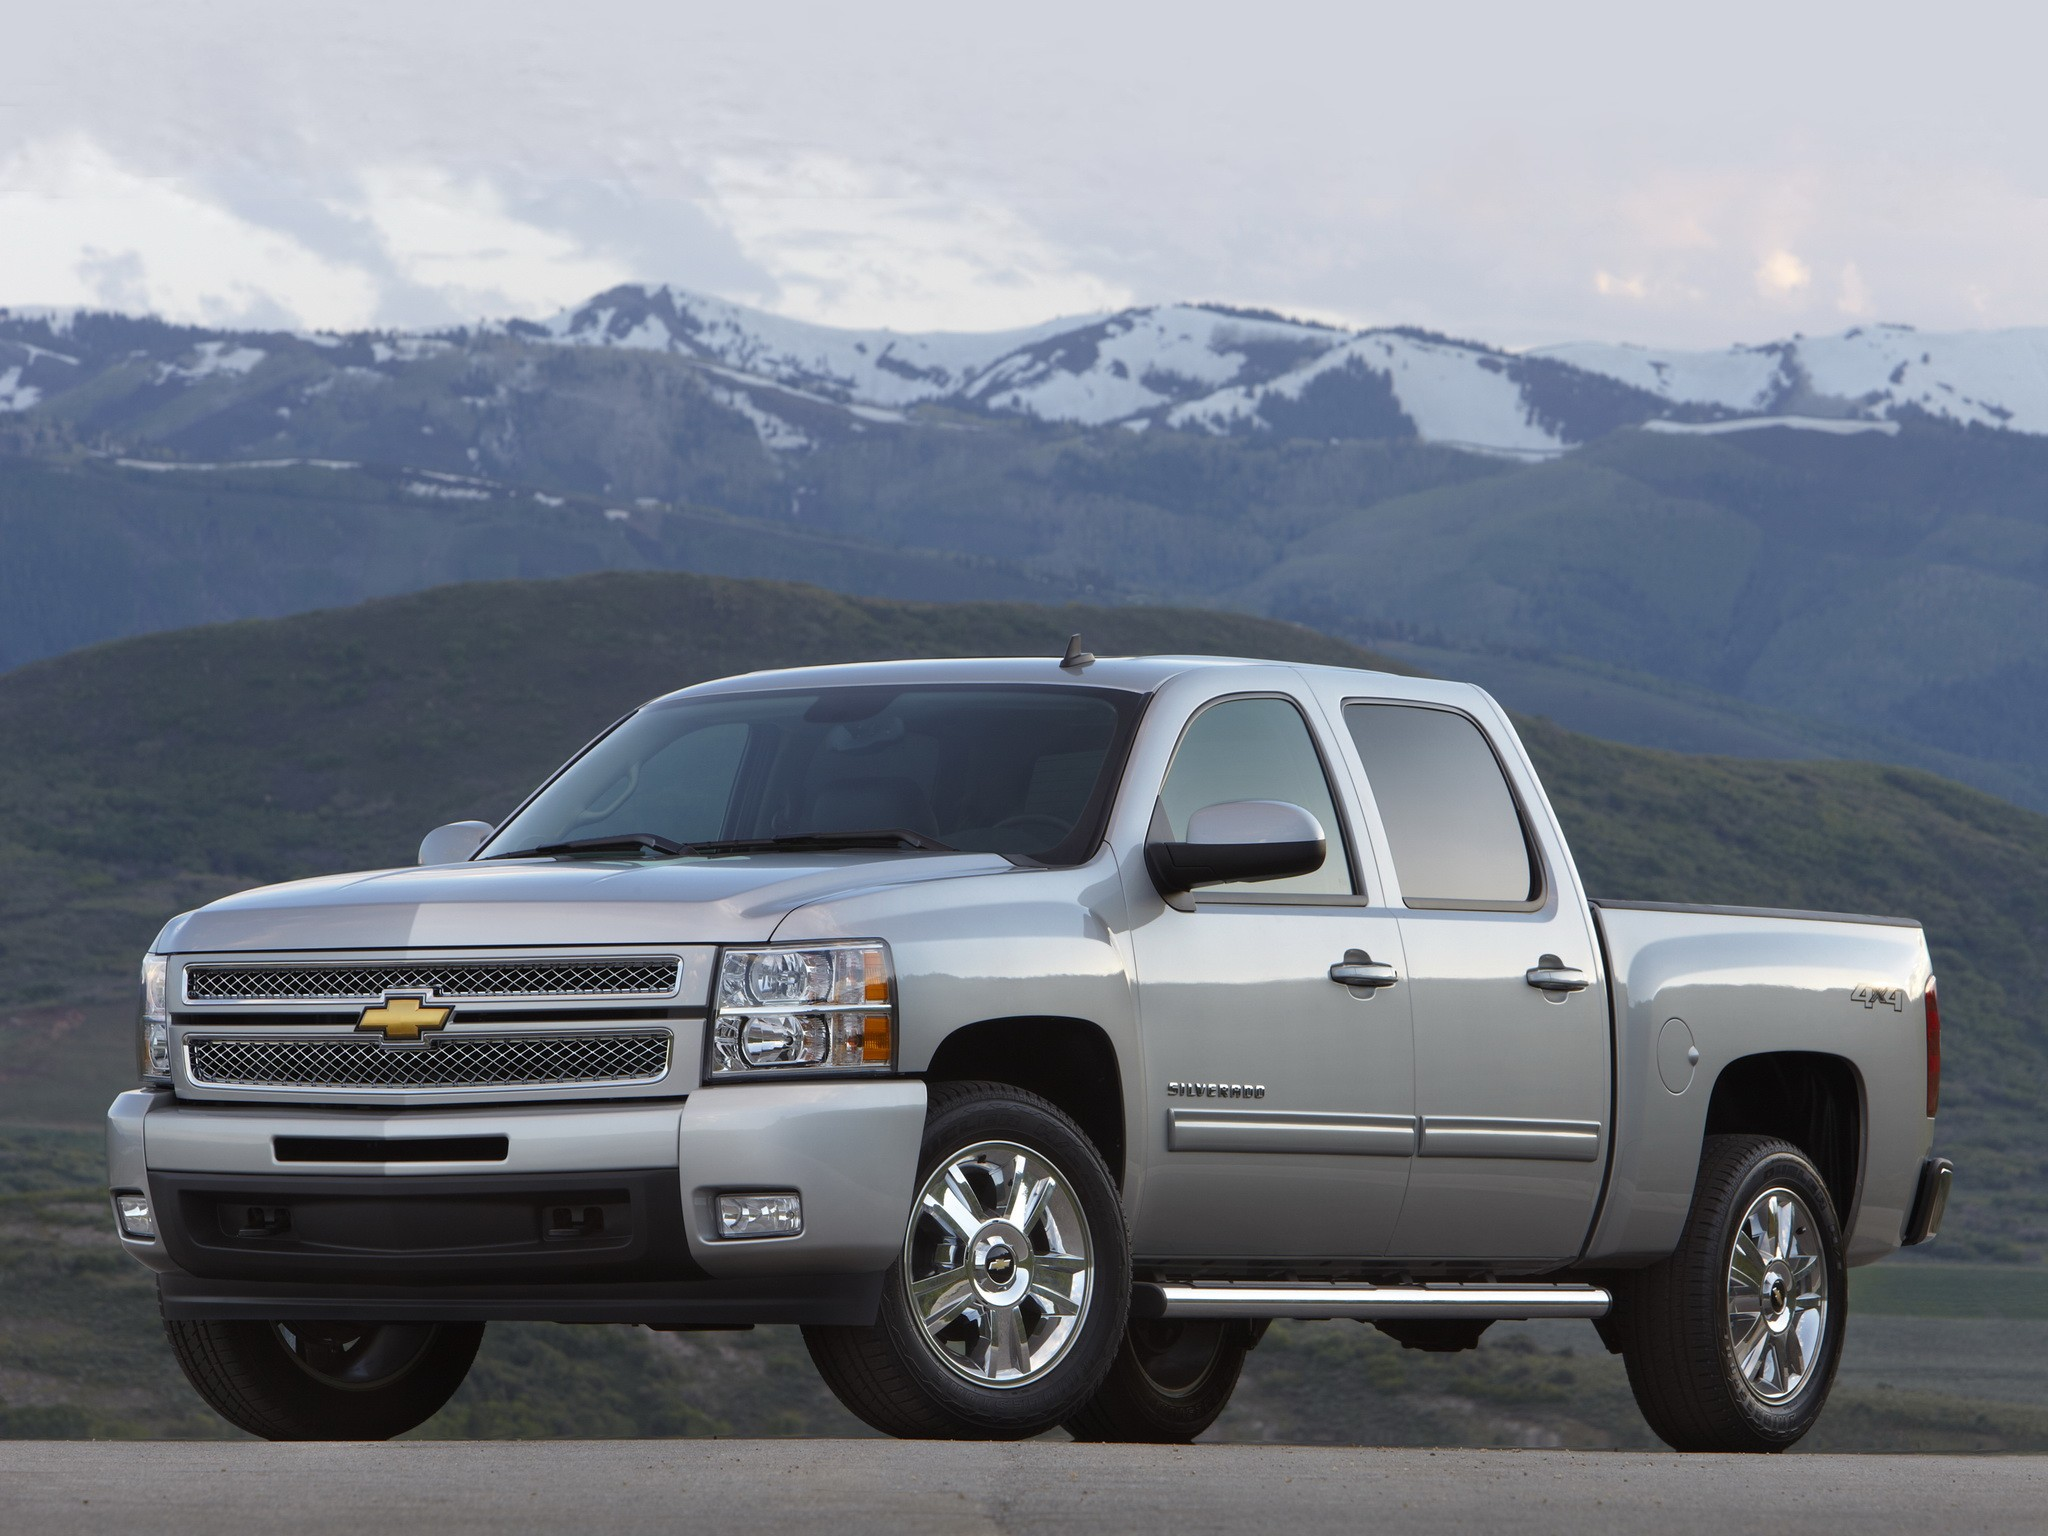 chevrolet silverado 1500 crew cab specs 2008 2009 2010 2011 2012 autoevolution. Black Bedroom Furniture Sets. Home Design Ideas